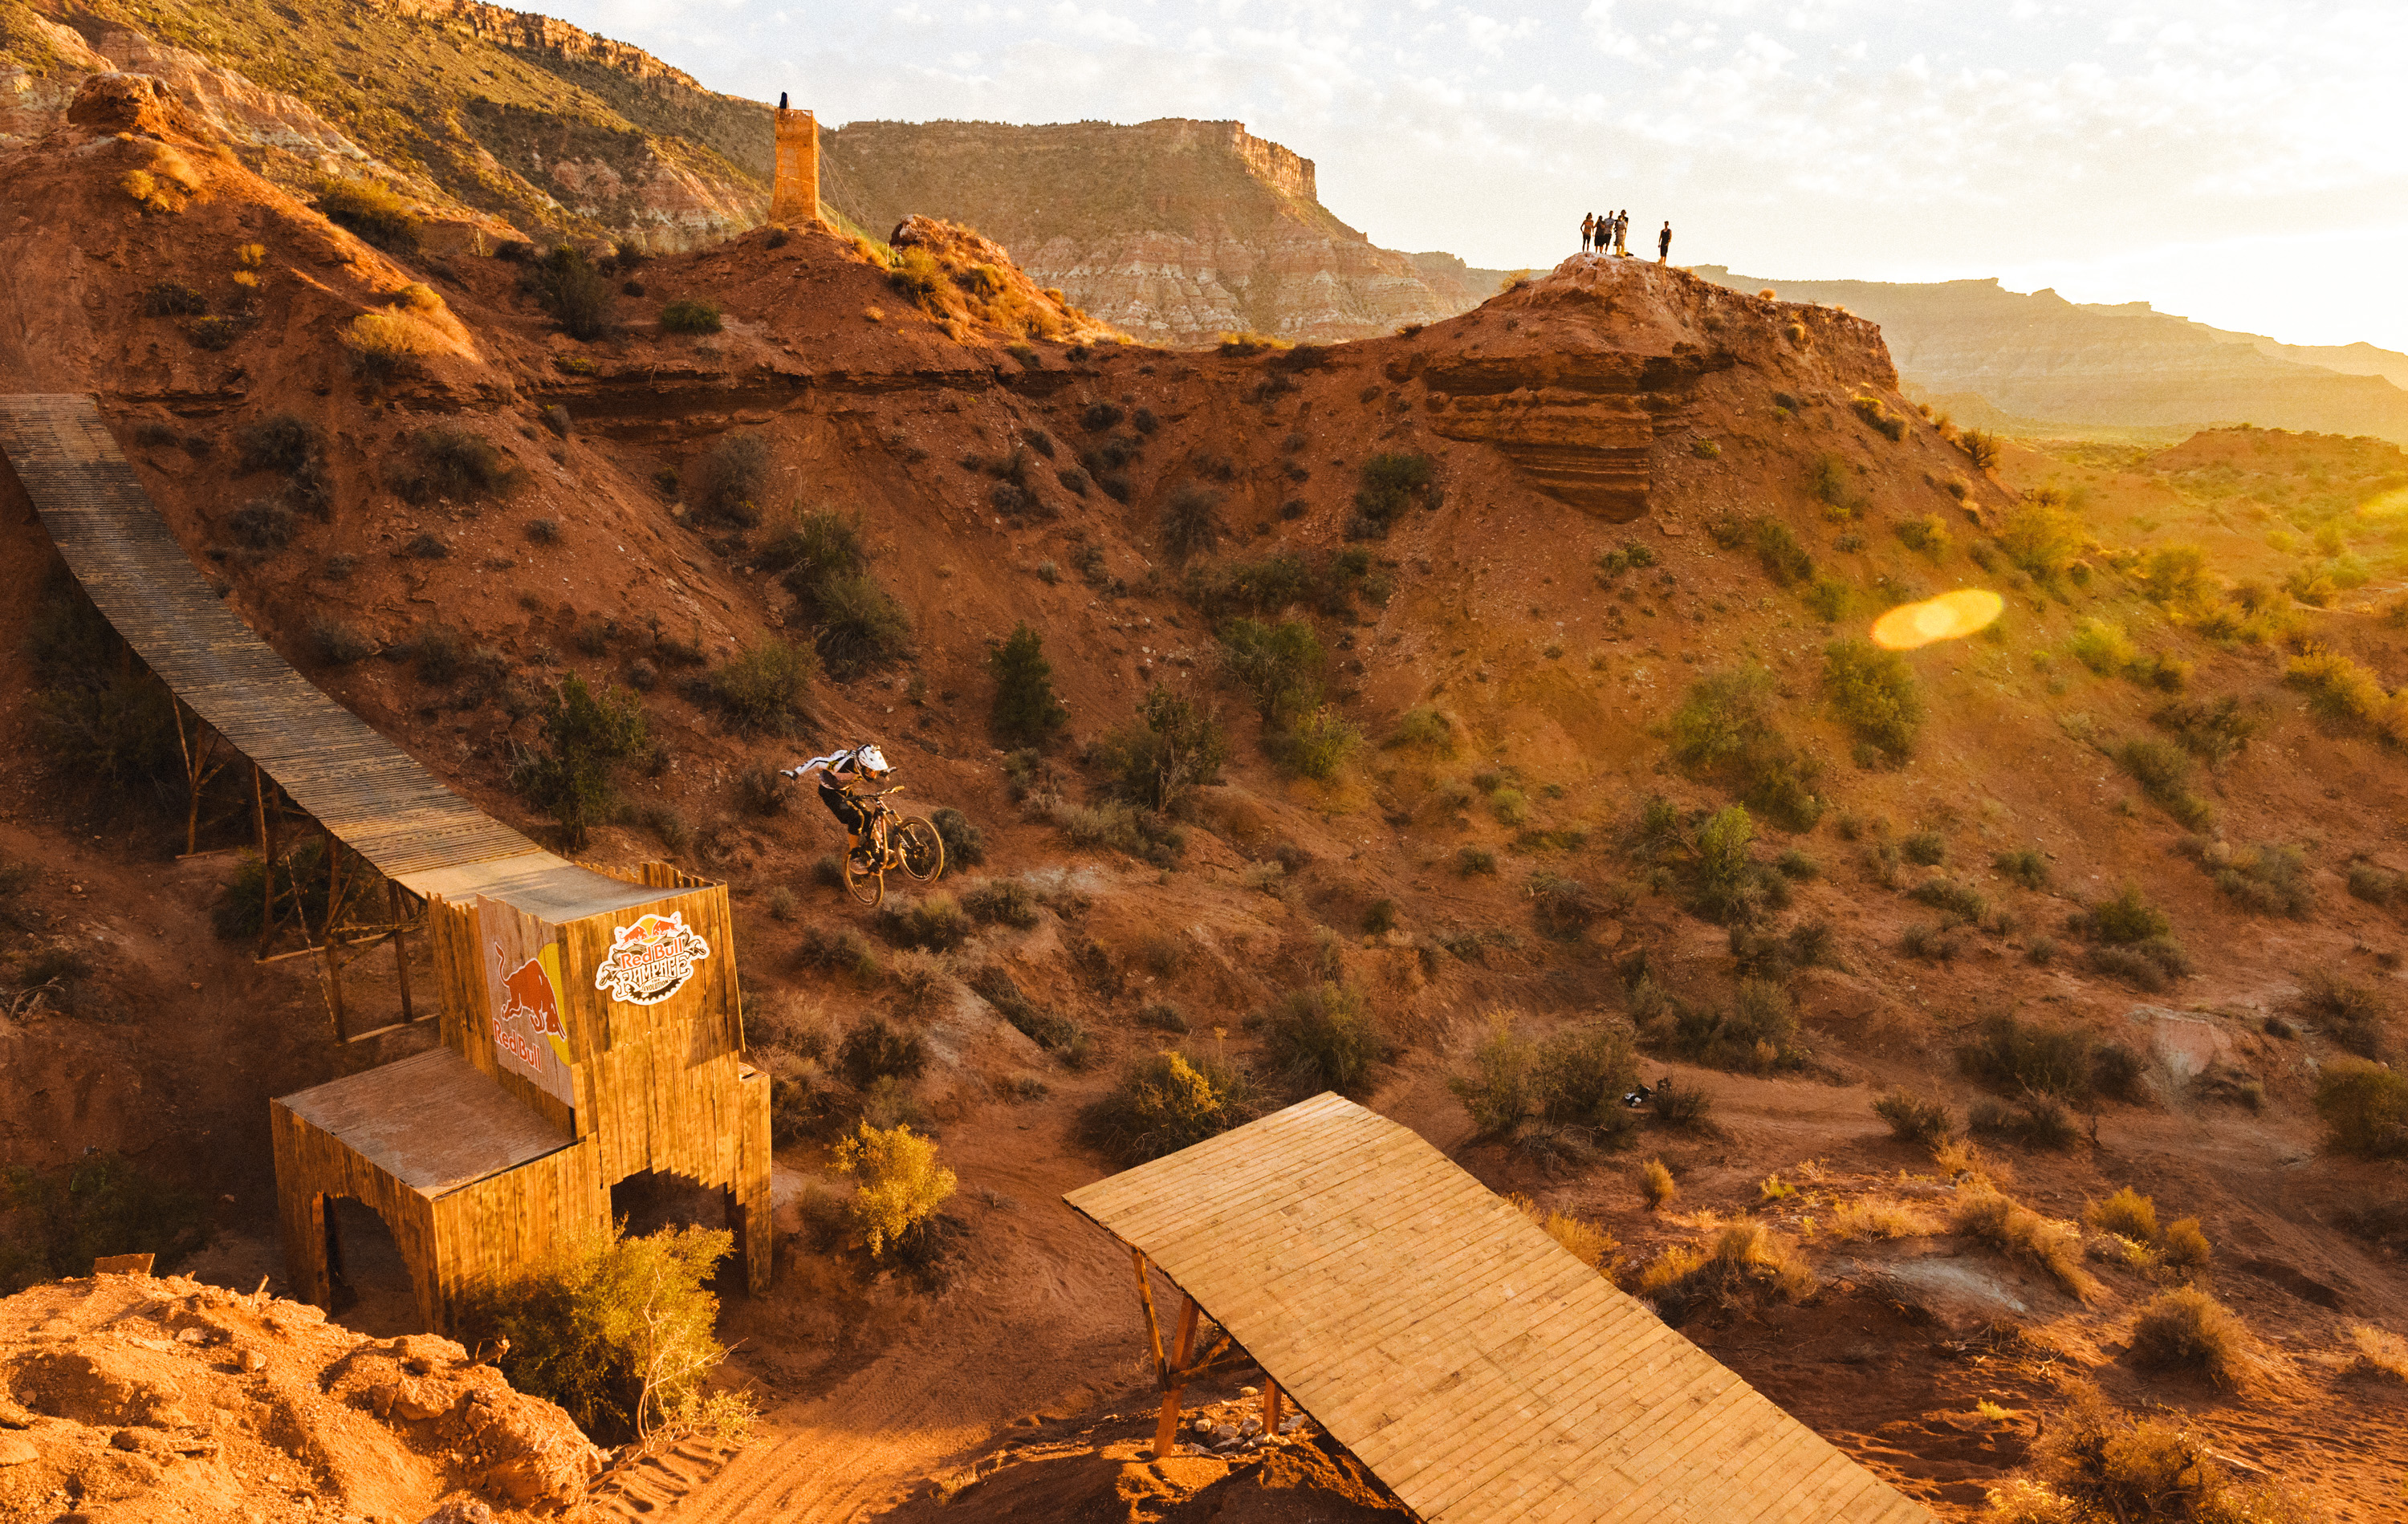 Red Bull Rampage - Greg Mionske - Advertising and Editorial Photographer in Denver